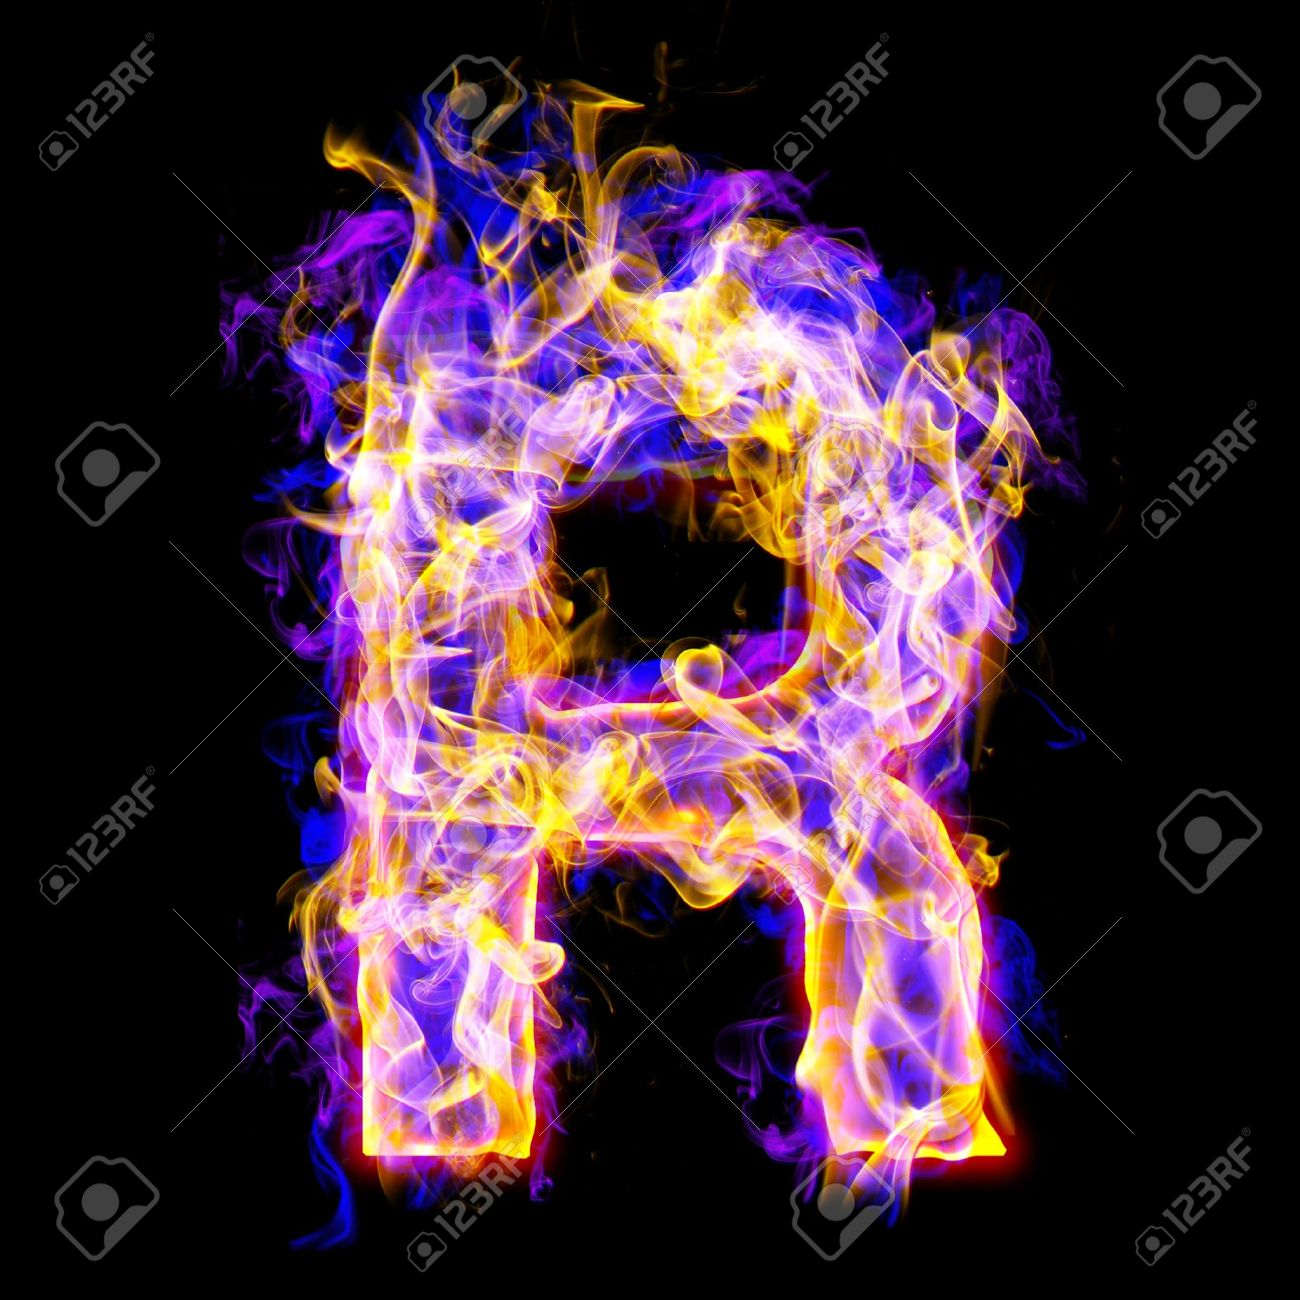 Letter R Burning With Blue And Pink Colors Stock Photo Picture And